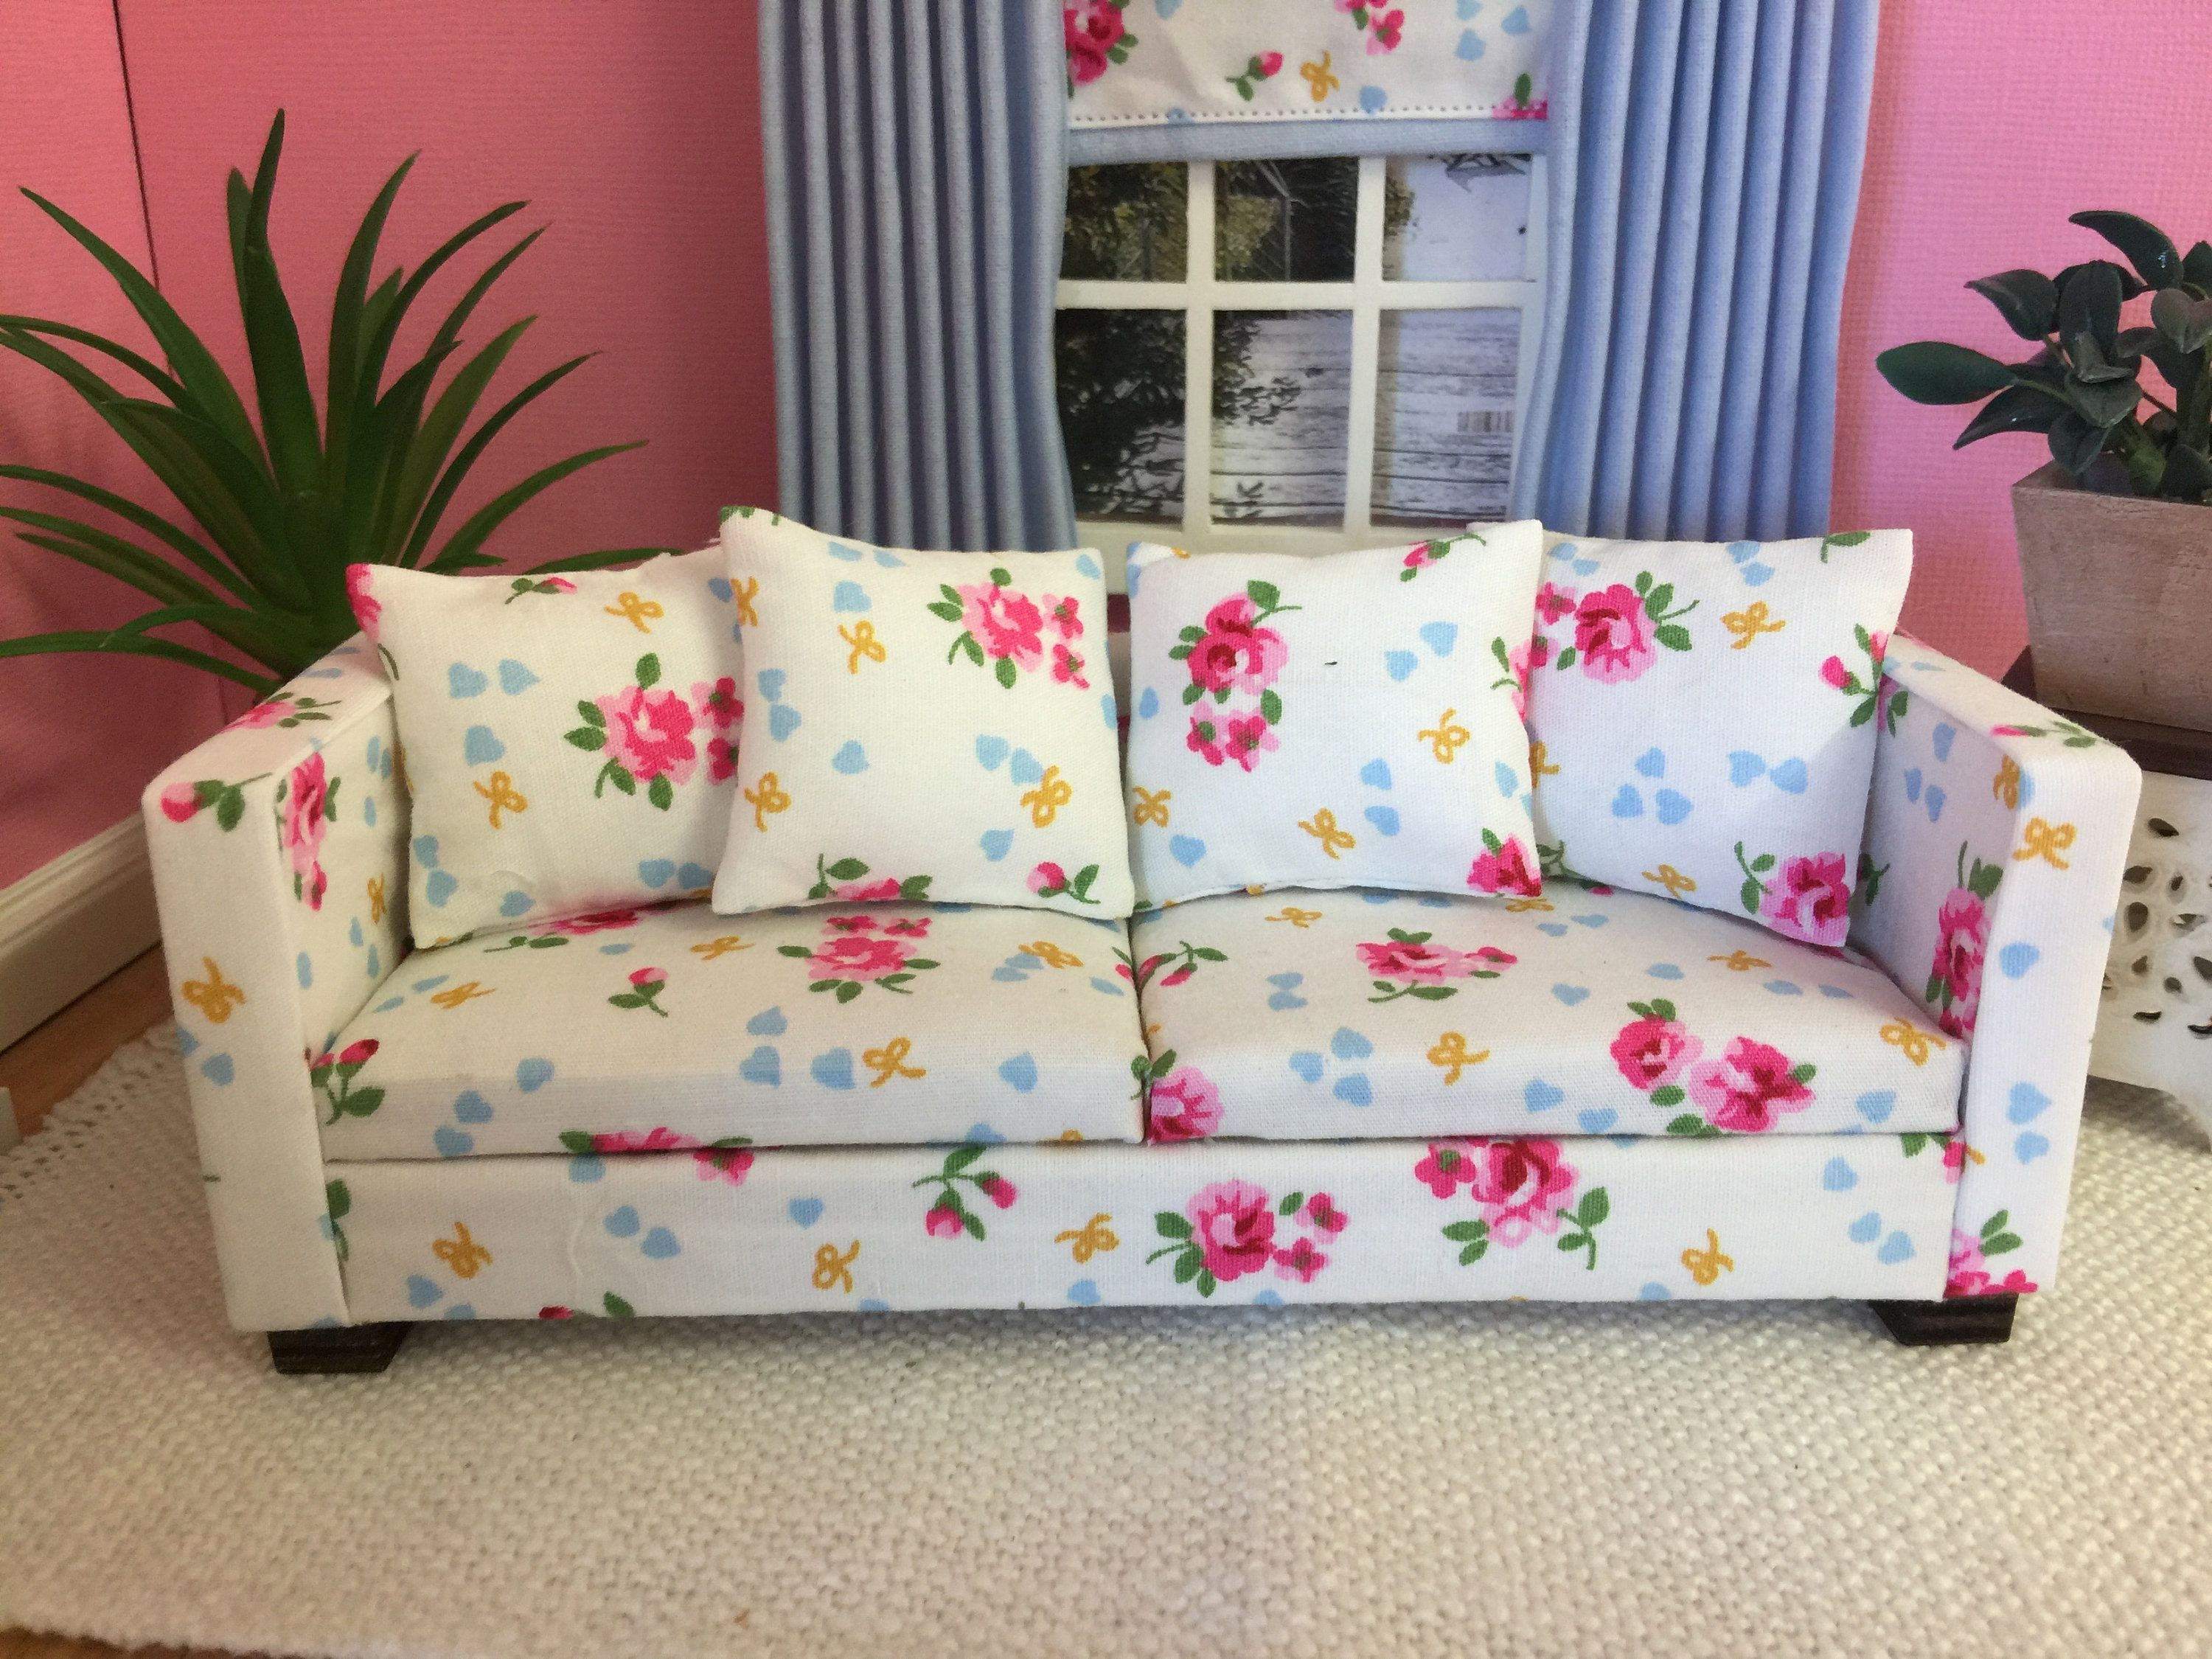 Handmade Miniature Doll House 12th Scale 1 12 Modern Wooden Framed Laura Ashley Style Floral Sofa Couch And Armchair With Throw Cushions In 2020 Floral Sofa Doll House Handmade Miniatures